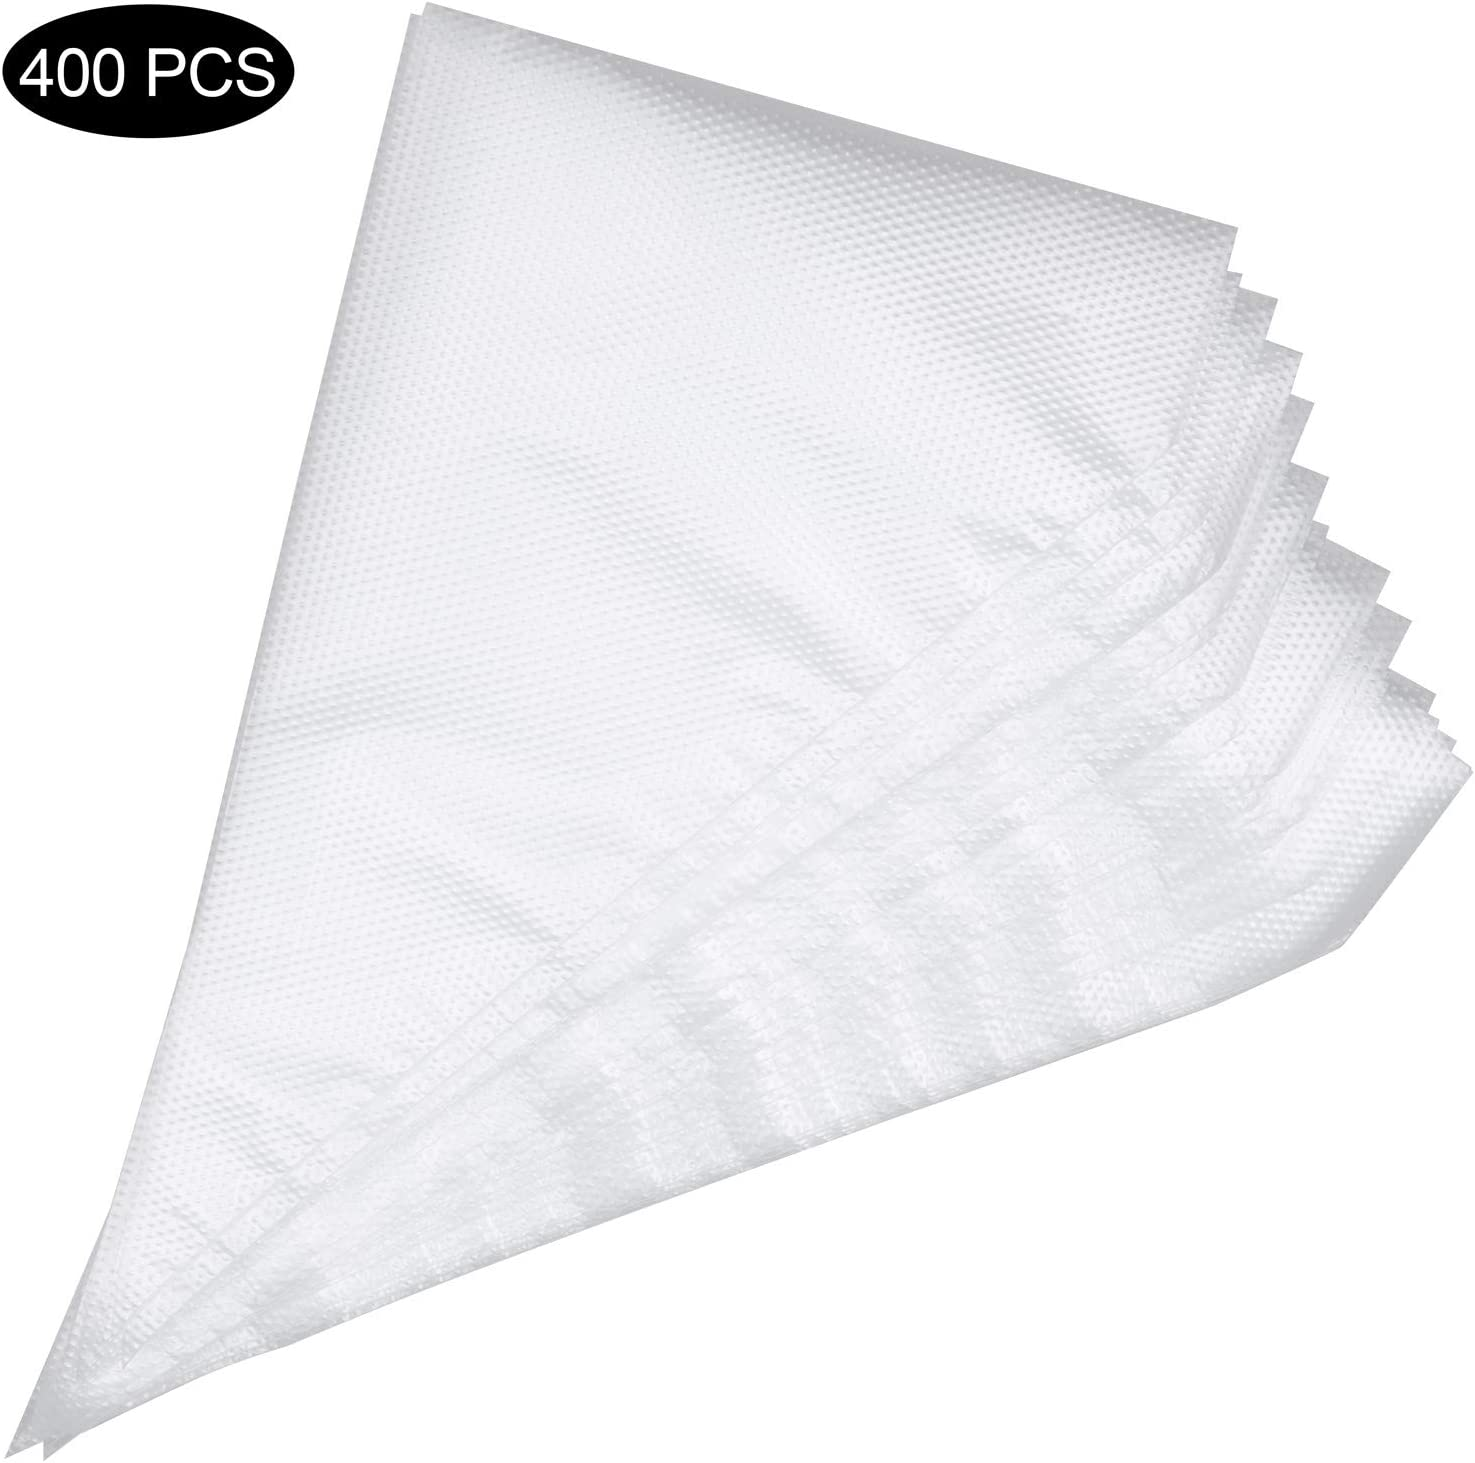 400 Pcs Disposable Piping Icing Pastry Bags 12 inch Cake Cream Cupcake Decorating Bag